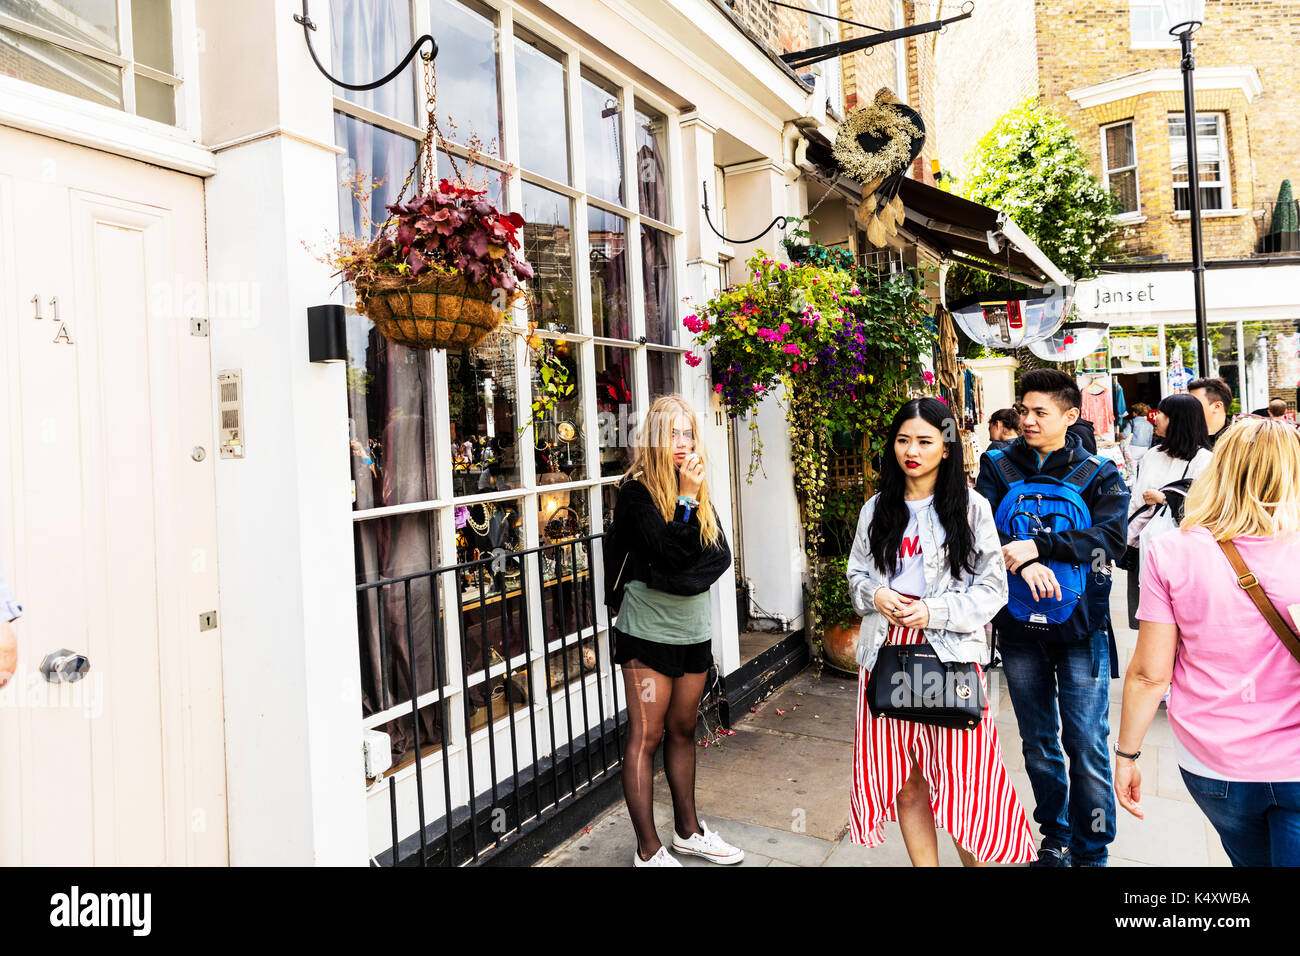 Ladder in tights, ring through nose, smoking, blonde smoking, blonde girl smoking, Portobello Road London, Portobello Road, Portobello Road people, UK - Stock Image